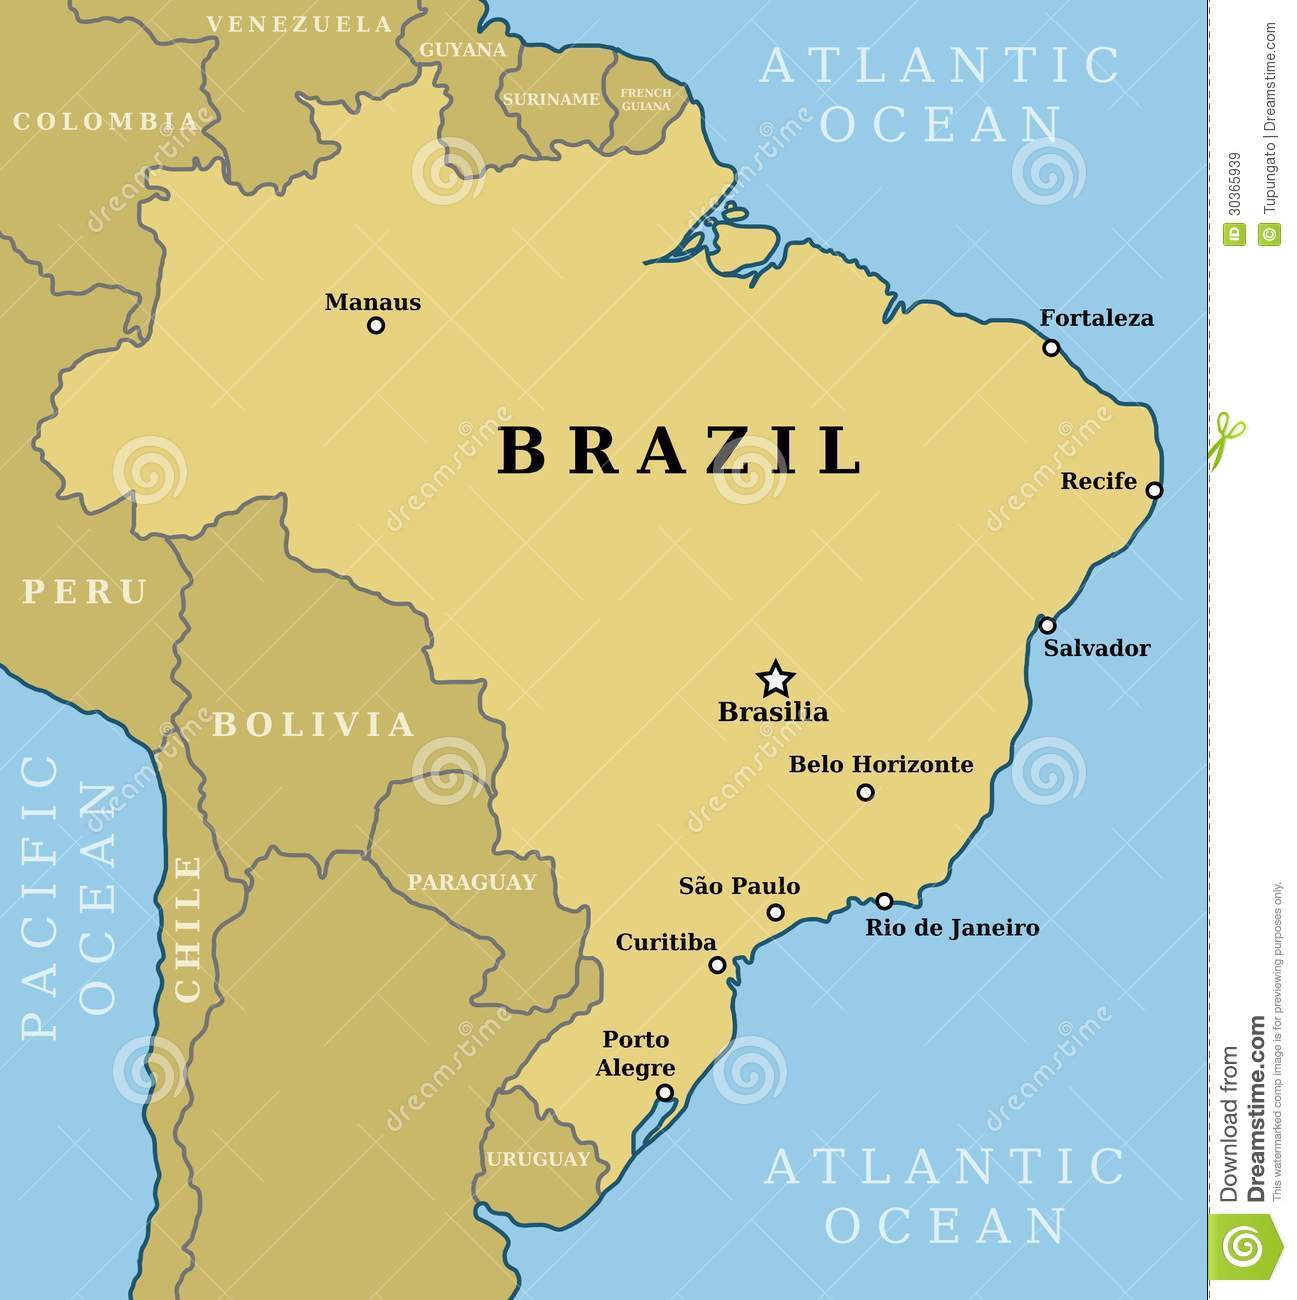 Image Brazilmapcountryoutlinelargestcitiesincluding - World largest cities map